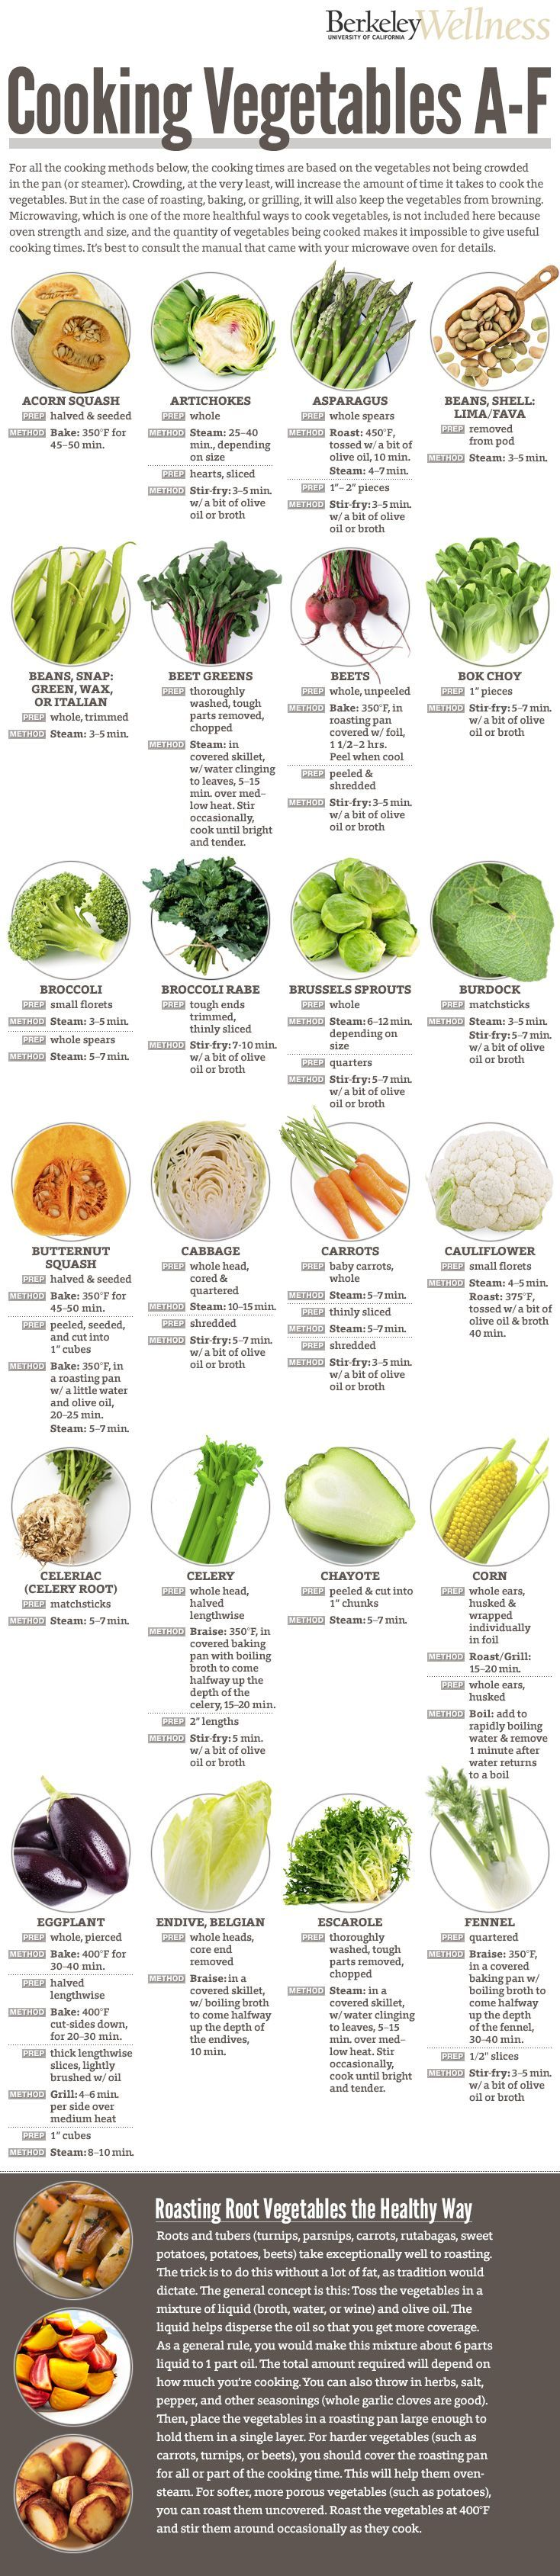 PART I: How to Cook Vegetables the healthy way (from Acorn squash to Fennel) by berkeleywellness #Infographic #Cooking_Vegetables